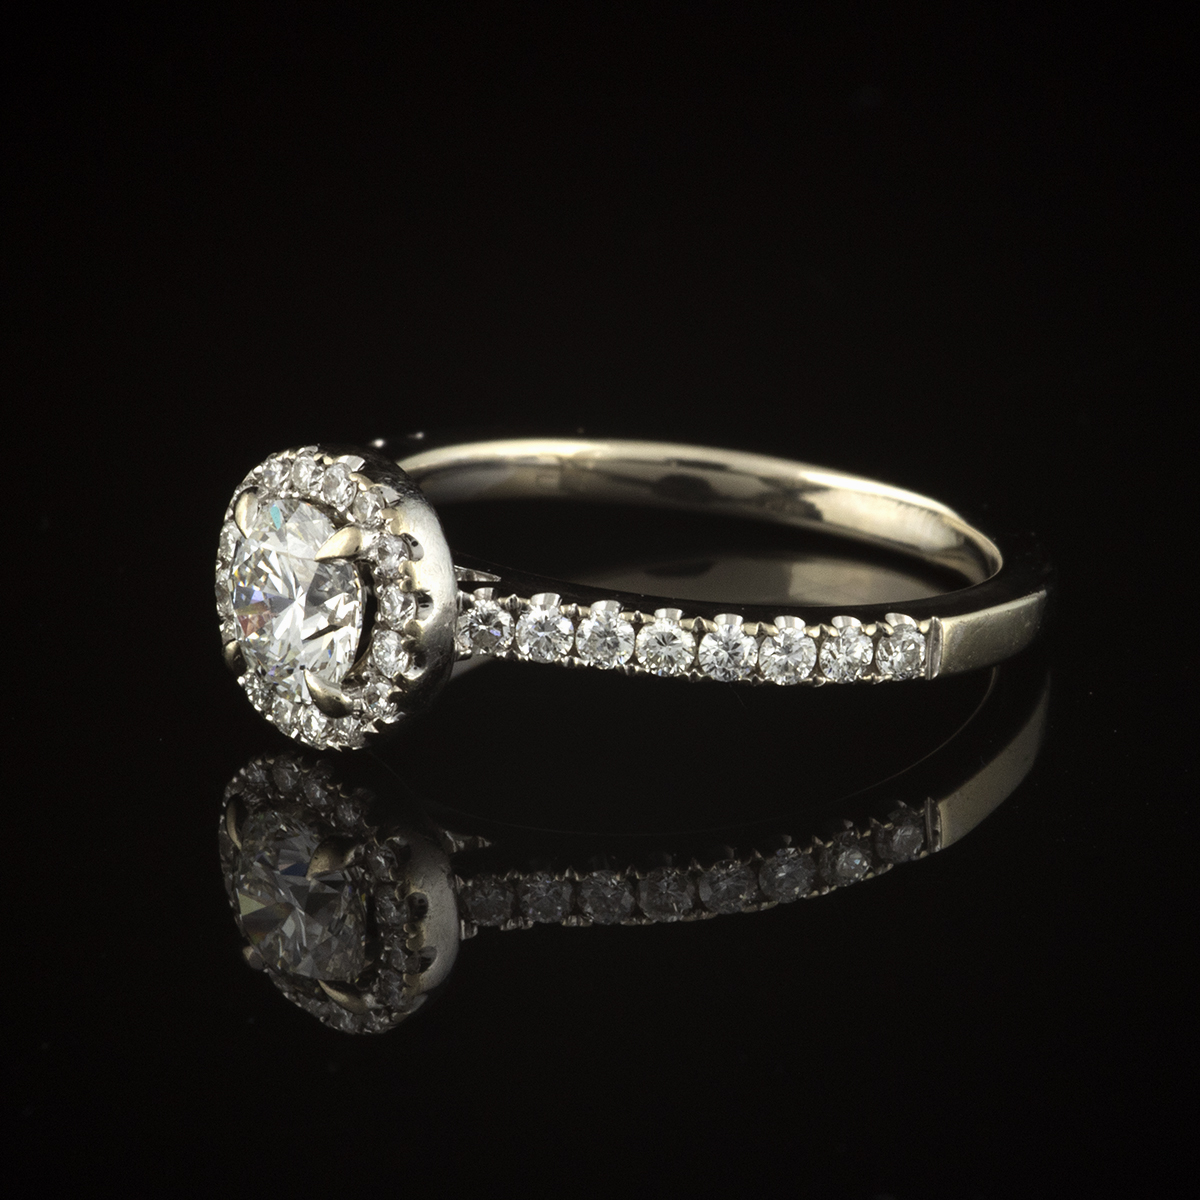 Pre-owned 14K White Gold Diamond Halo Ring